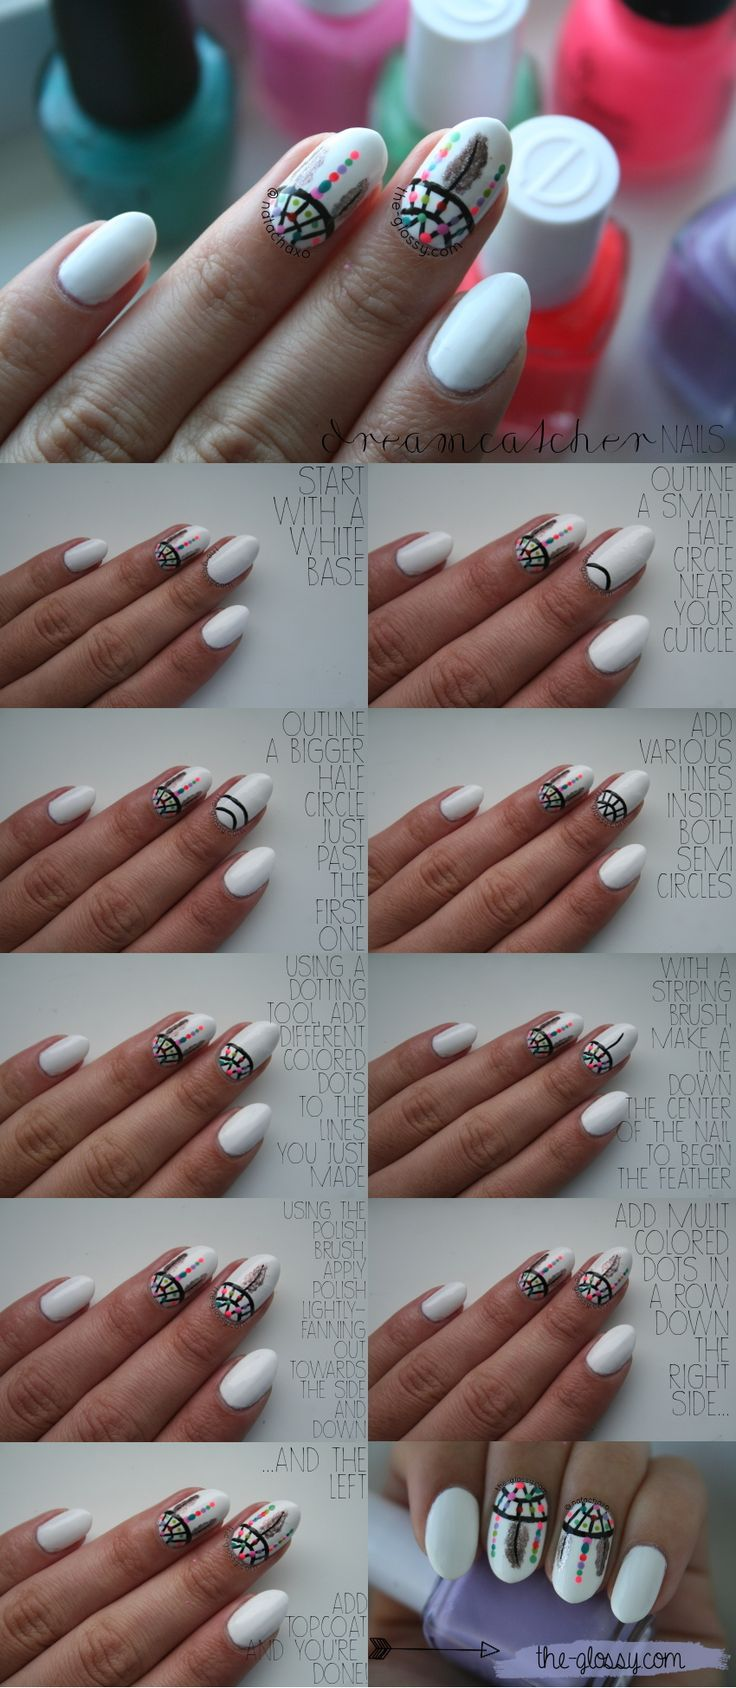 Dreamcatcher Nail Art Tutorial.I have done this soooo cute and use any color it all goes